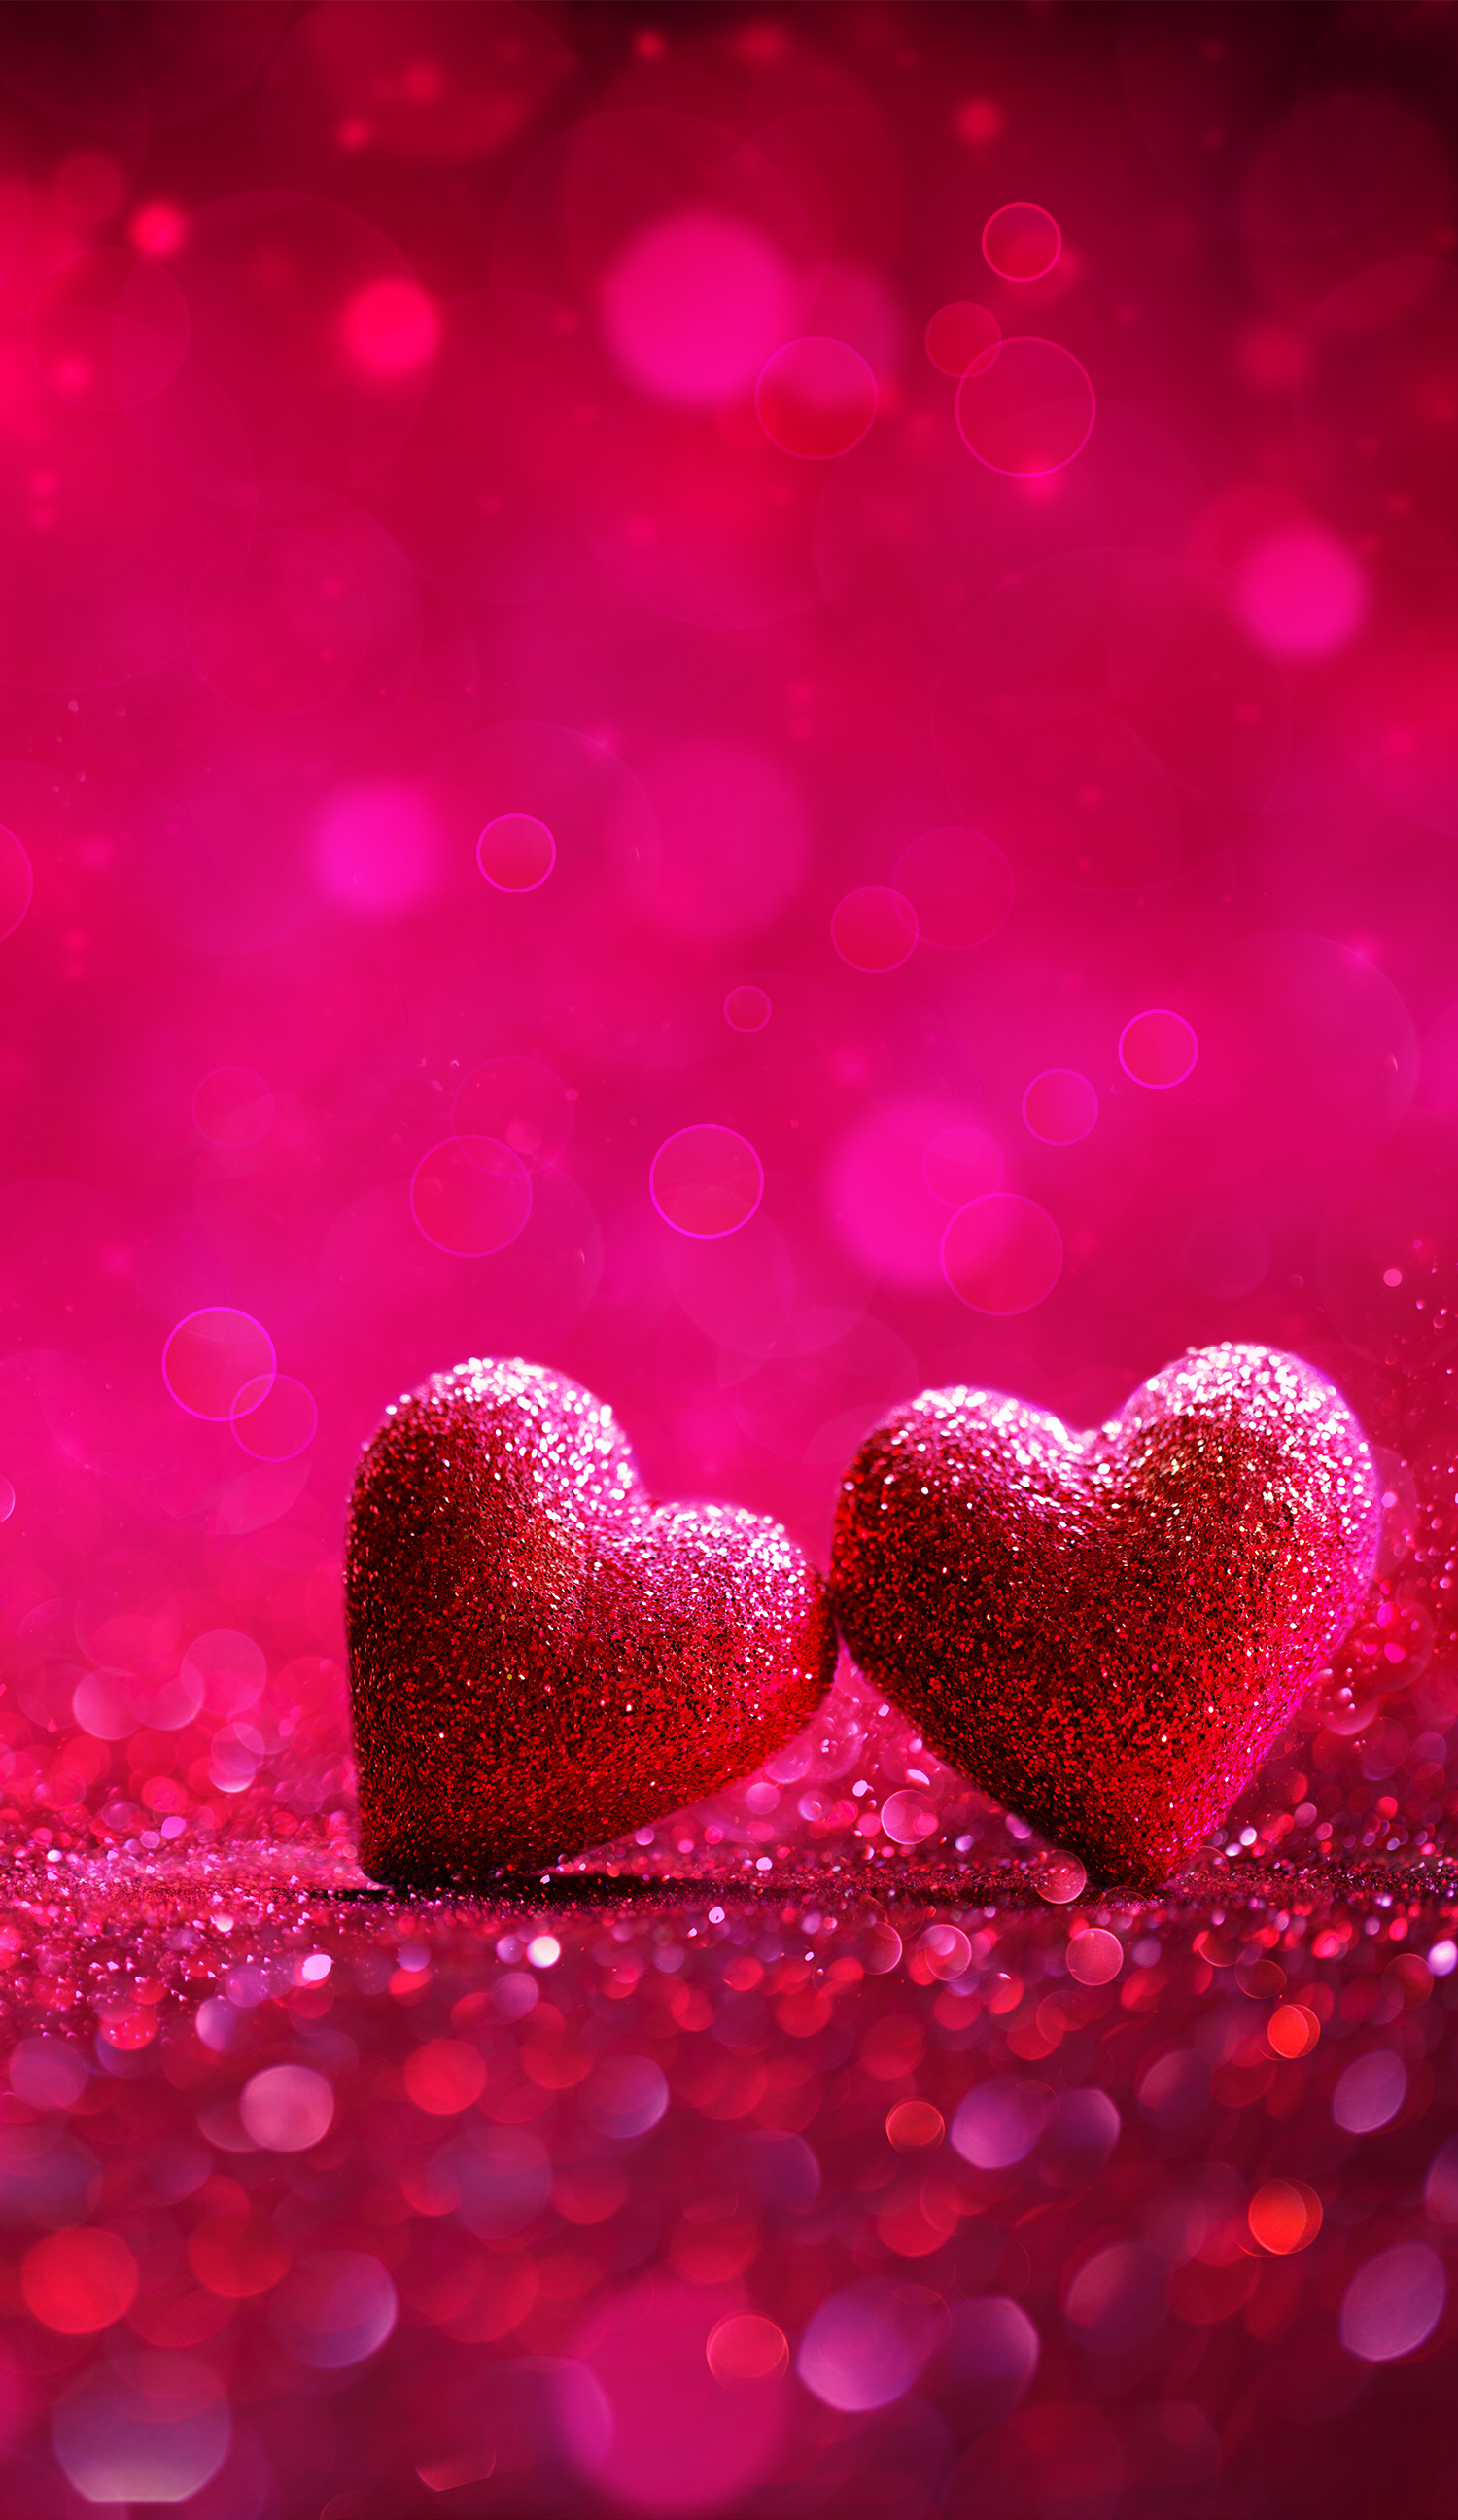 Pin By Lexie Renee Care On Wallpaper Heart Wallpaper Wallpaper Iphone Love Valentines Wallpaper